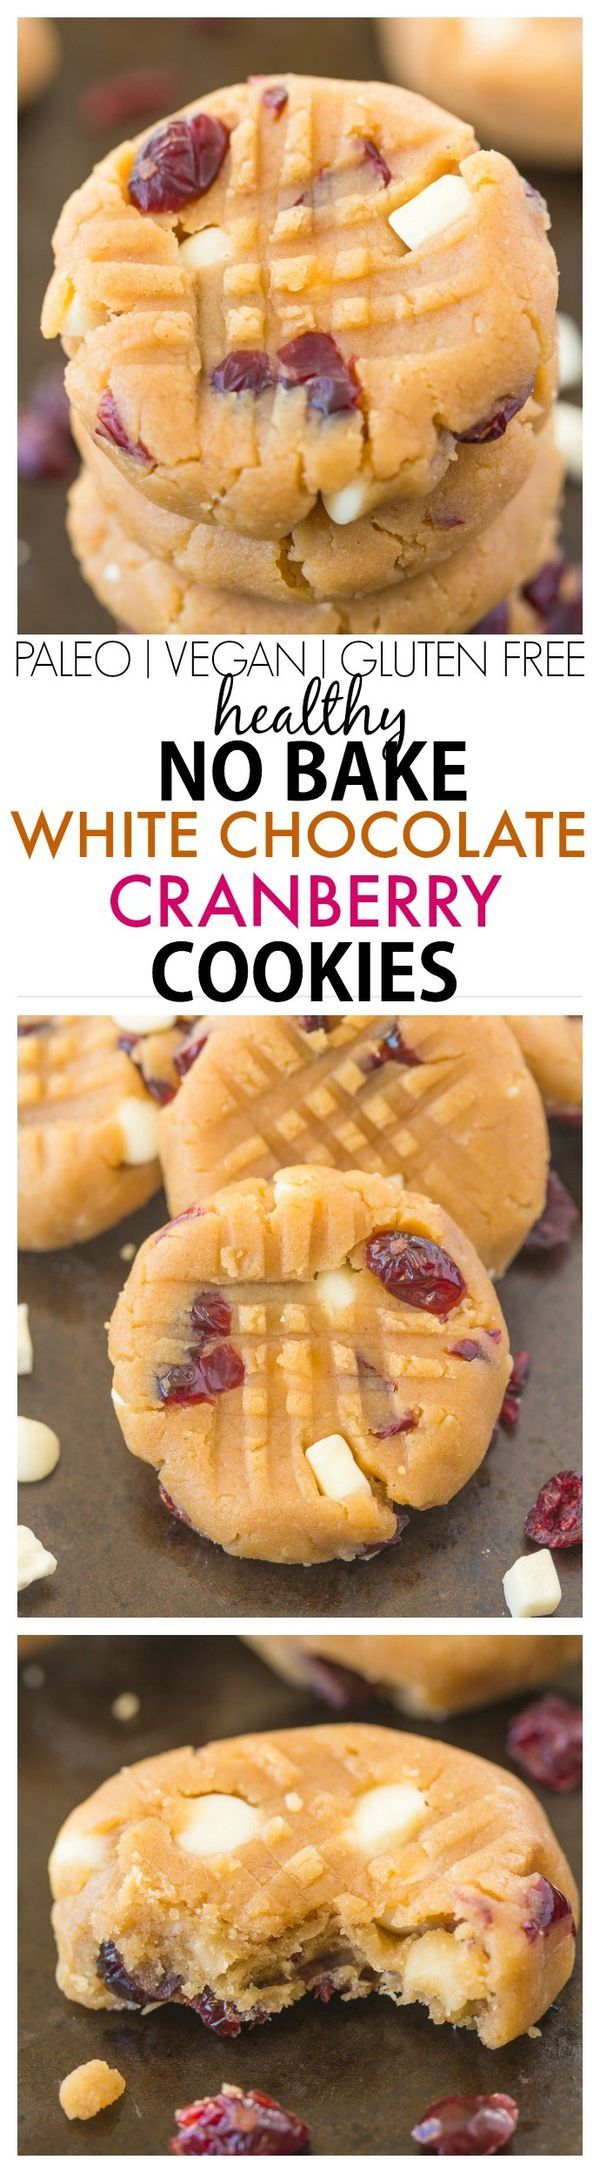 Healthy No Bake White Chocolate Cranberry Cookies- NO butter, oil, sugar or white flour but SO delicious- A quick, easy and delicious snack or healthy dessert recipe! {vegan, gluten free, paleo option}- thebigmansworld.com